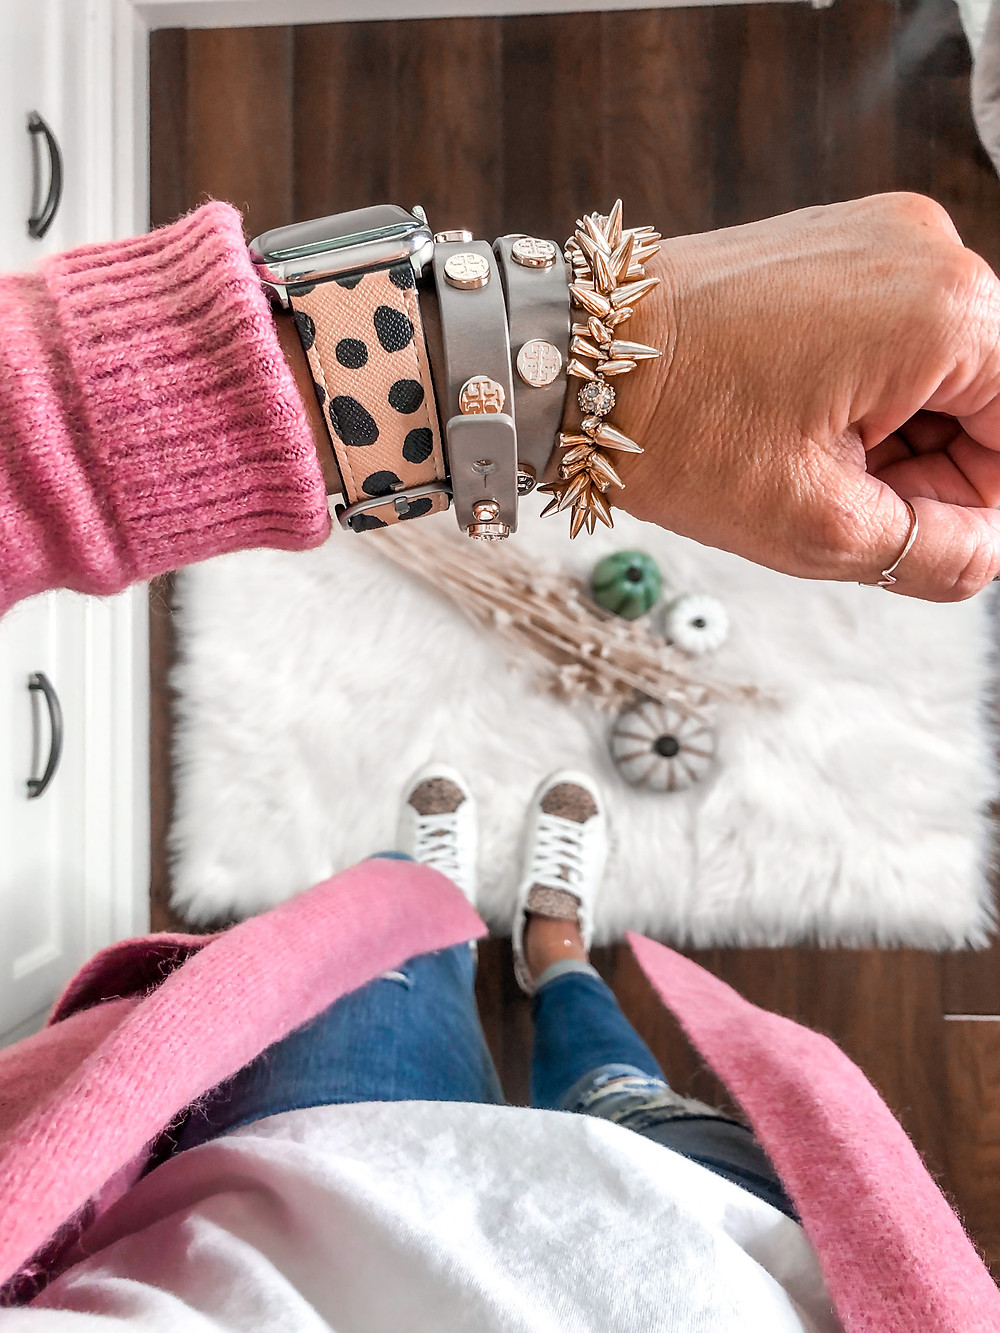 Apple Watch band. Stella and Dot. leopard sneakers. Target Style. Target does it again.